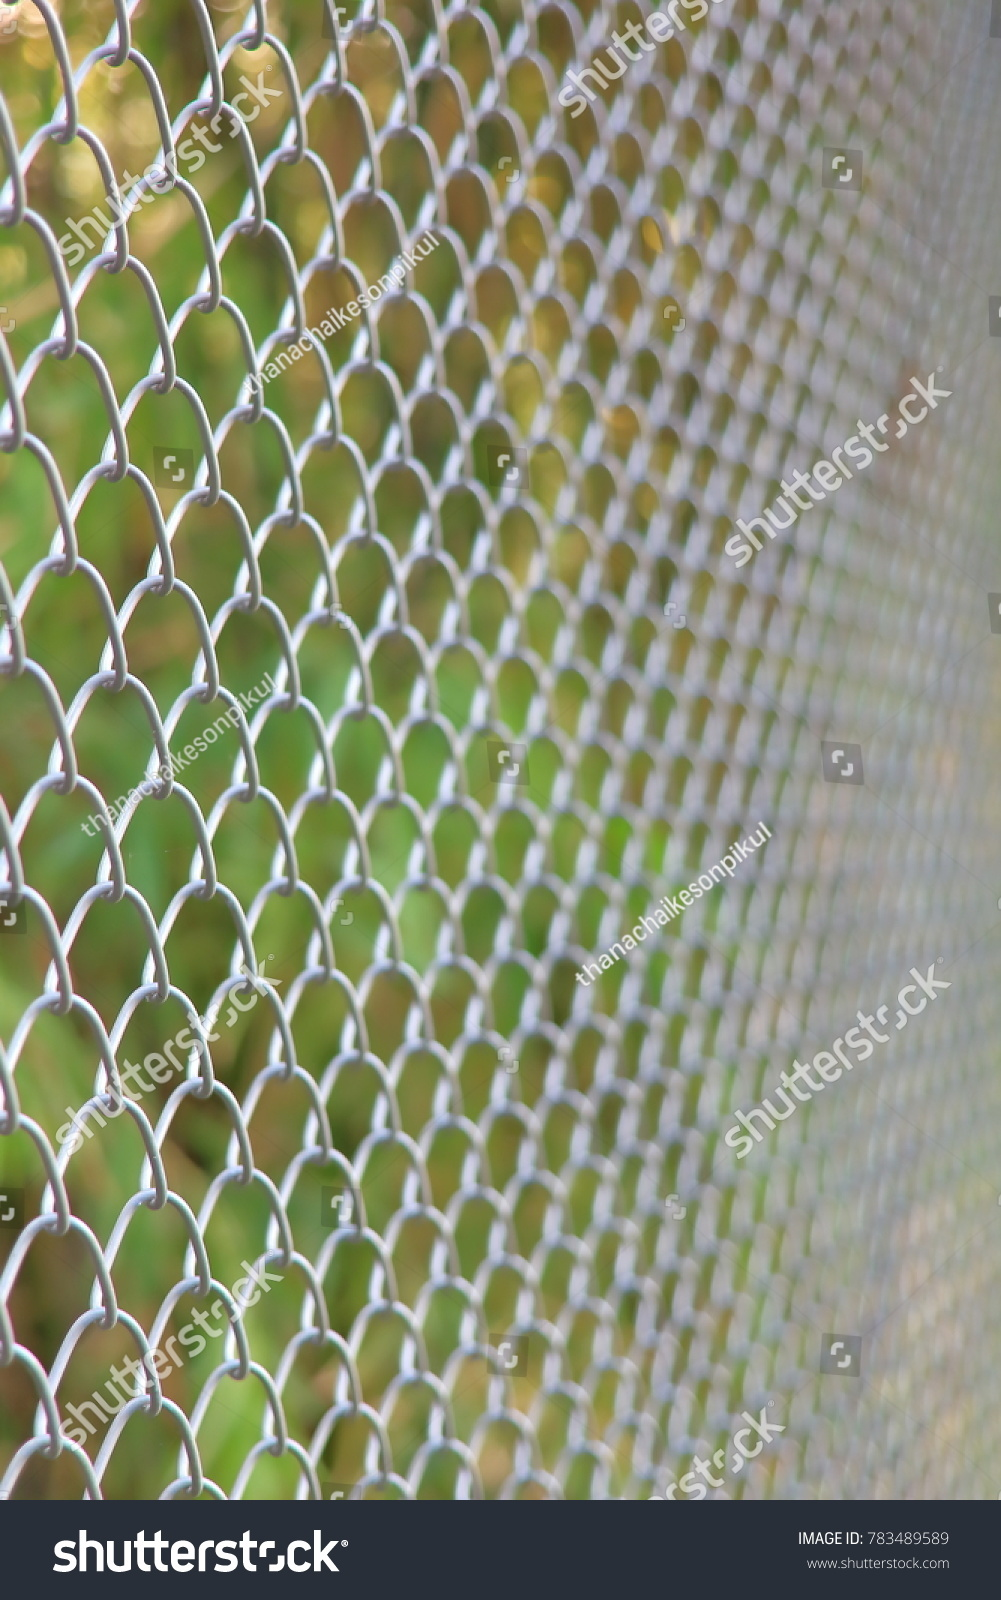 Chainlink Fencing Cyclone Fence Hurricane Fence Stock Photo (Safe to ...